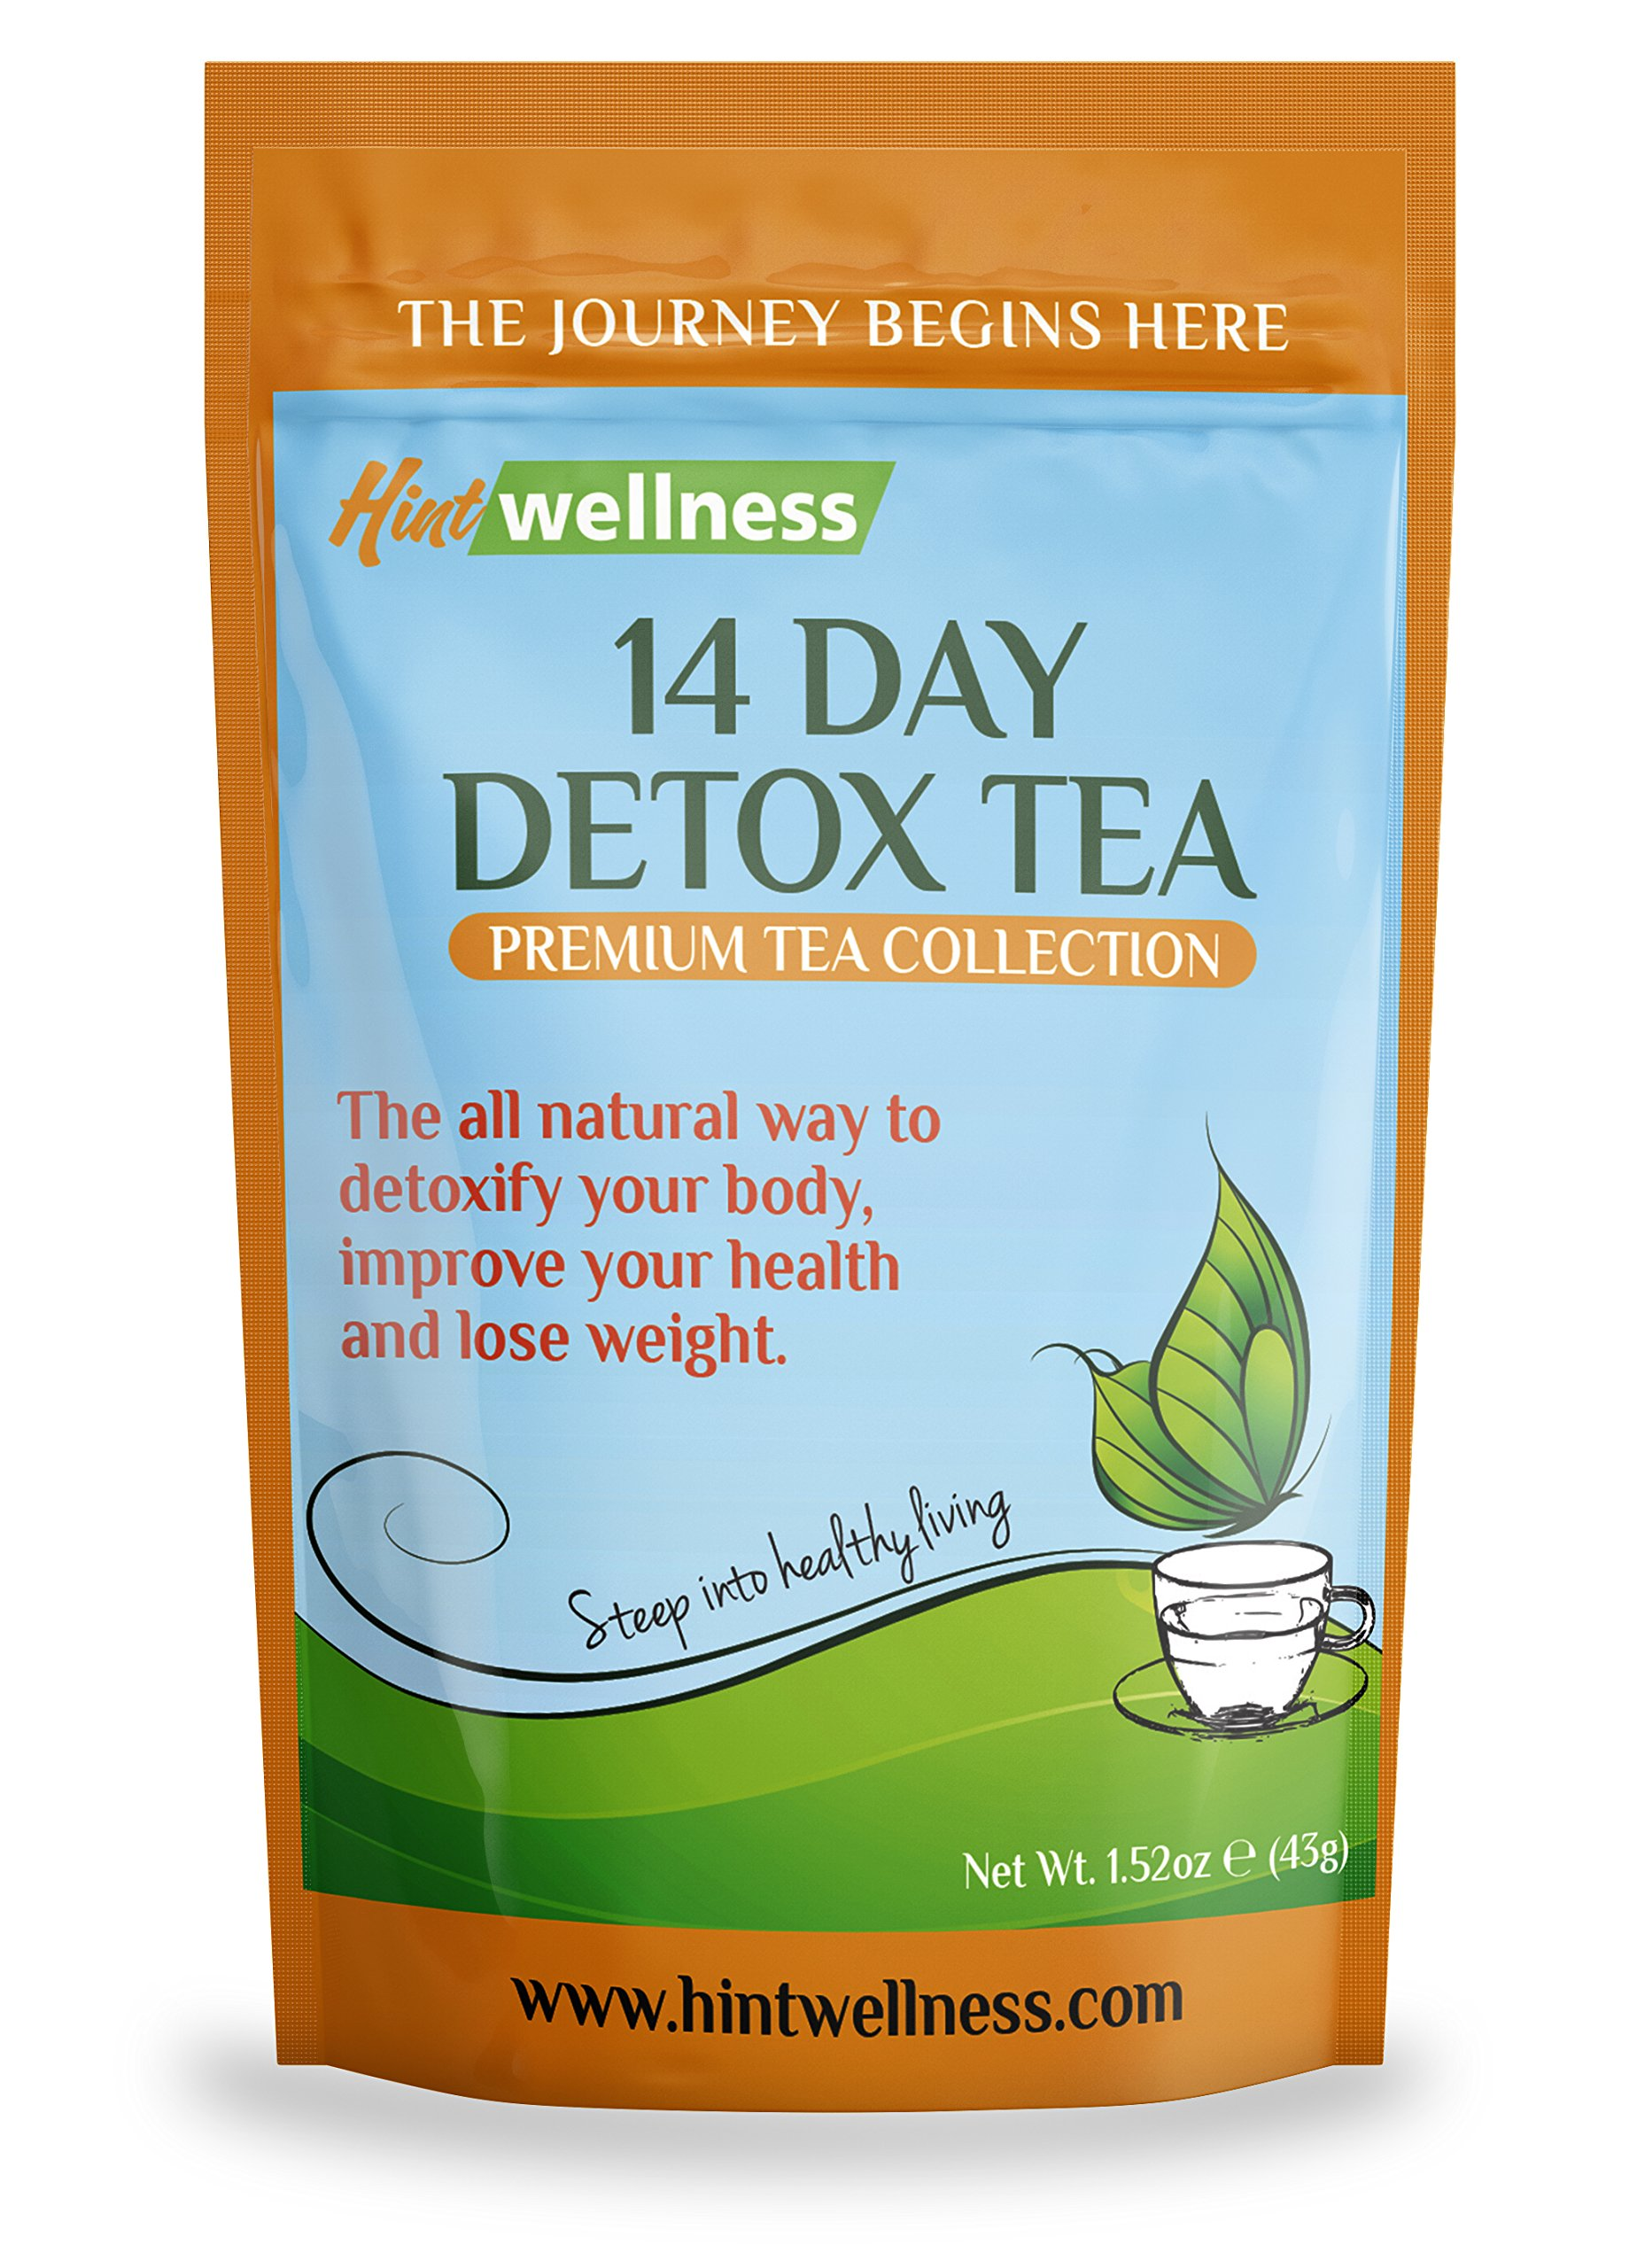 14-Day Detox Tea by Hint Wellness (43g) - Skinny Tea Detox and Body Cleanse Aids Weight Loss, Reduces Bloating and Improves Digestion - Delicious, Premium Quality Loose Leaf Herbal Detox Blend